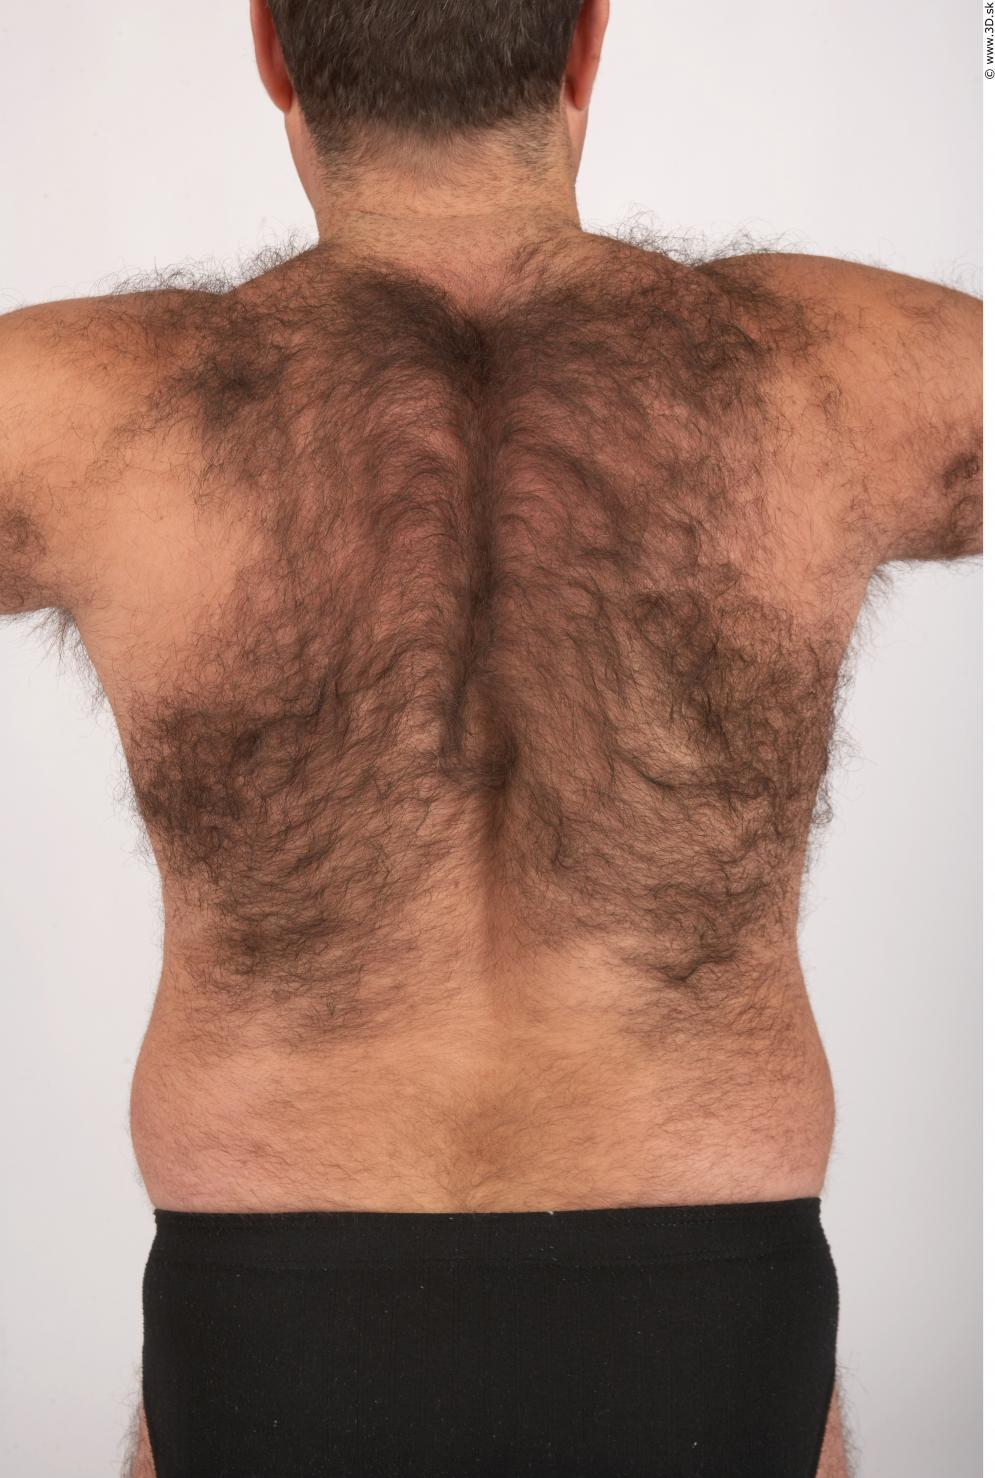 Image from Matej - Hairy male photo refences from 3D.sk - 288691matej_0122.jpg